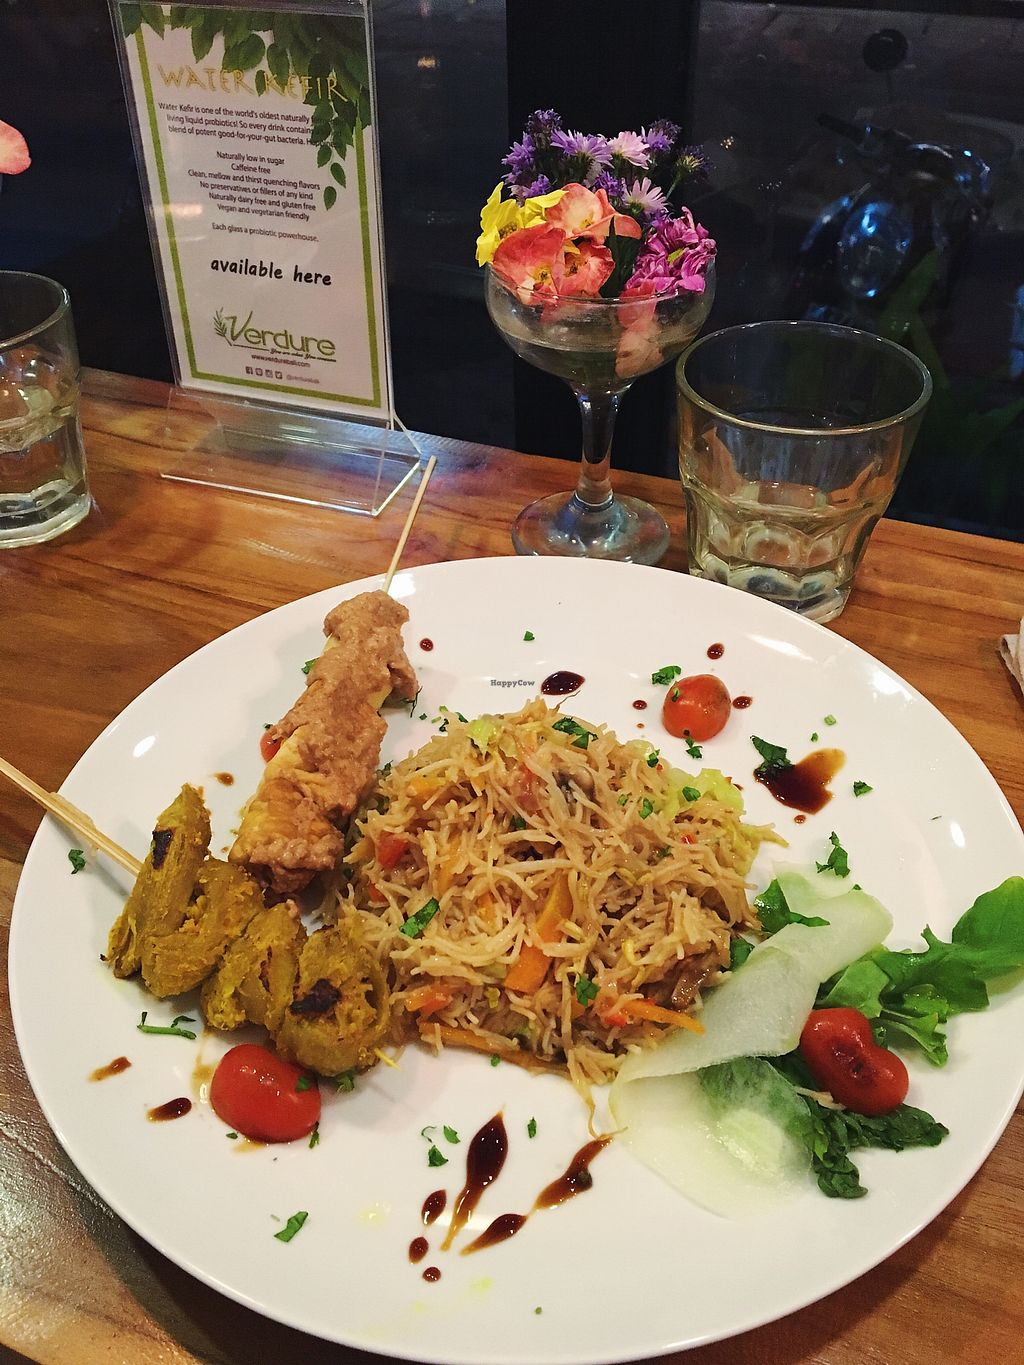 "Photo of Vinny's Warung  by <a href=""/members/profile/GetterR"">GetterR</a> <br/>Mie Goreng with satay  <br/> August 24, 2017  - <a href='/contact/abuse/image/99397/296519'>Report</a>"